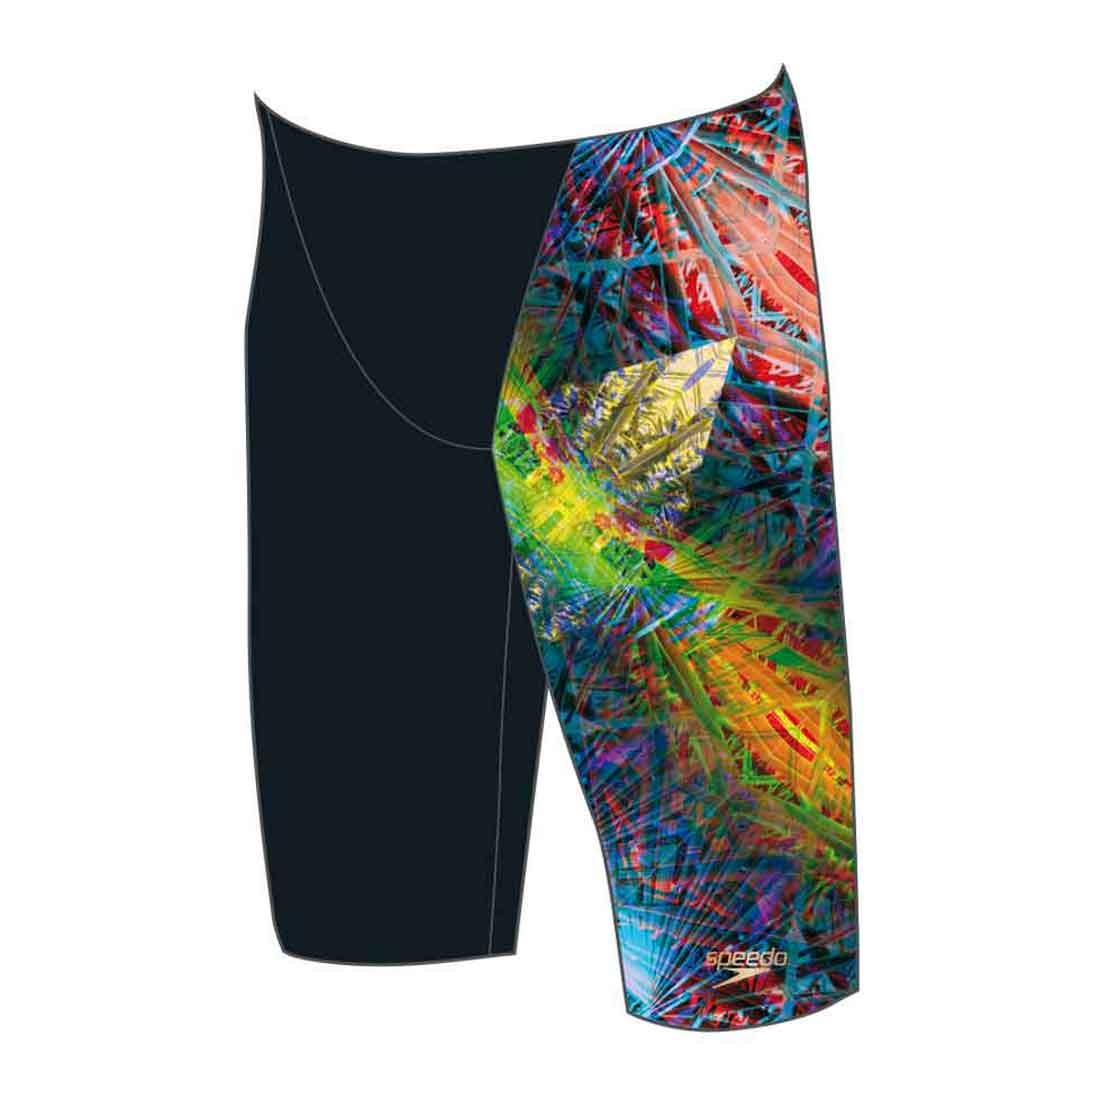 Speedo Koleido Allover Digital Jammer - Schwimmshort